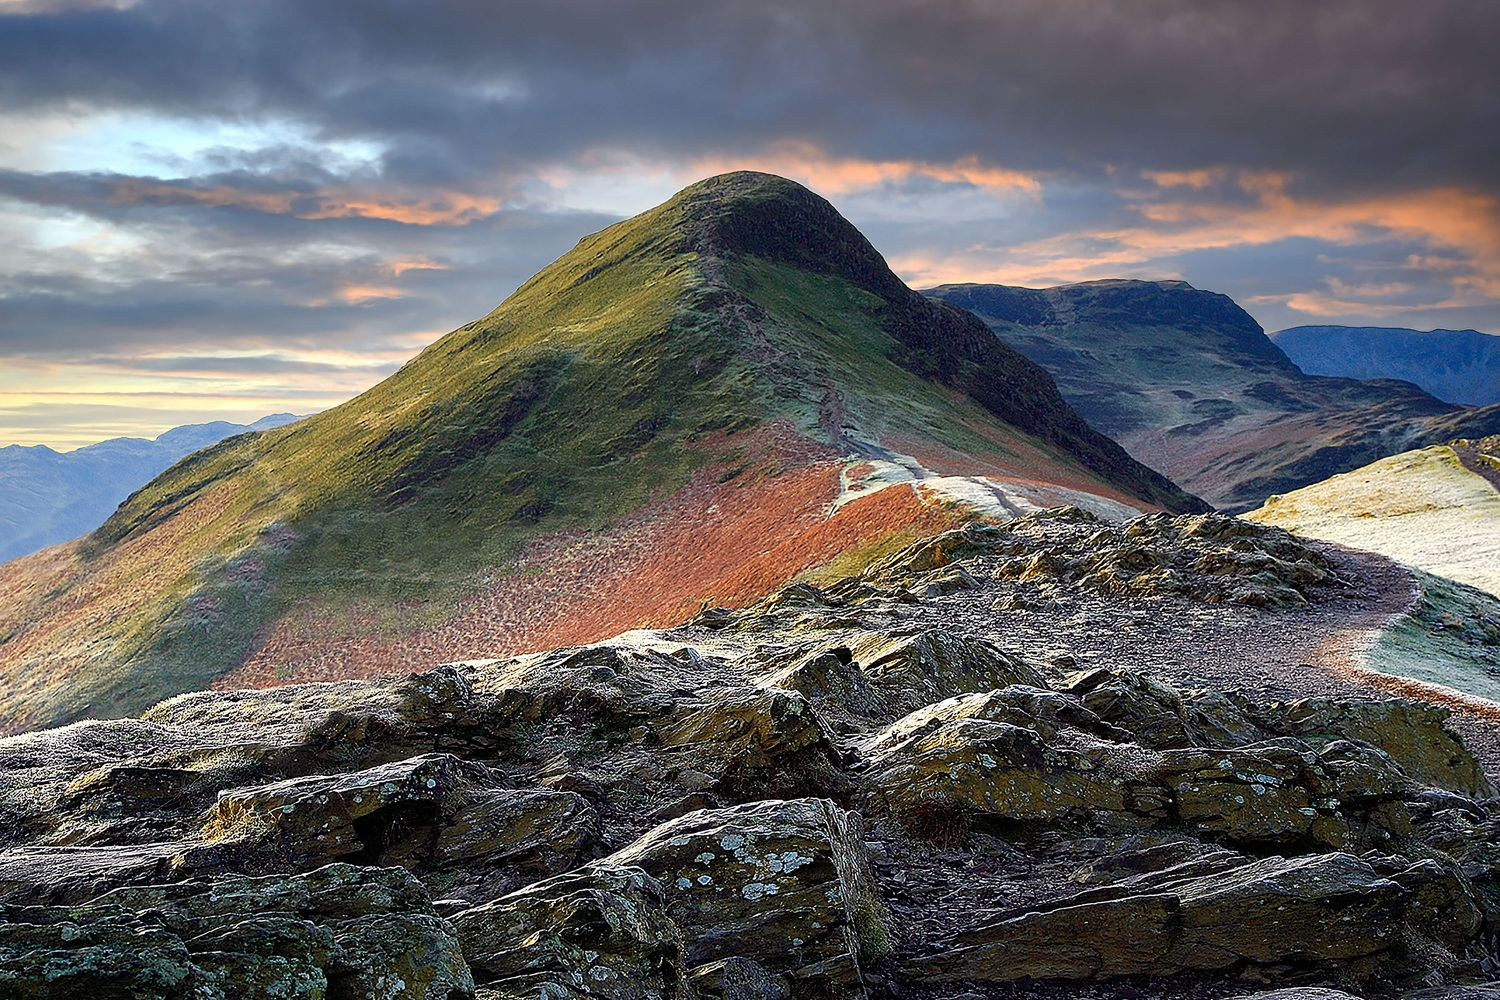 Sunset on the descent of Catbells by Martin Lawrence